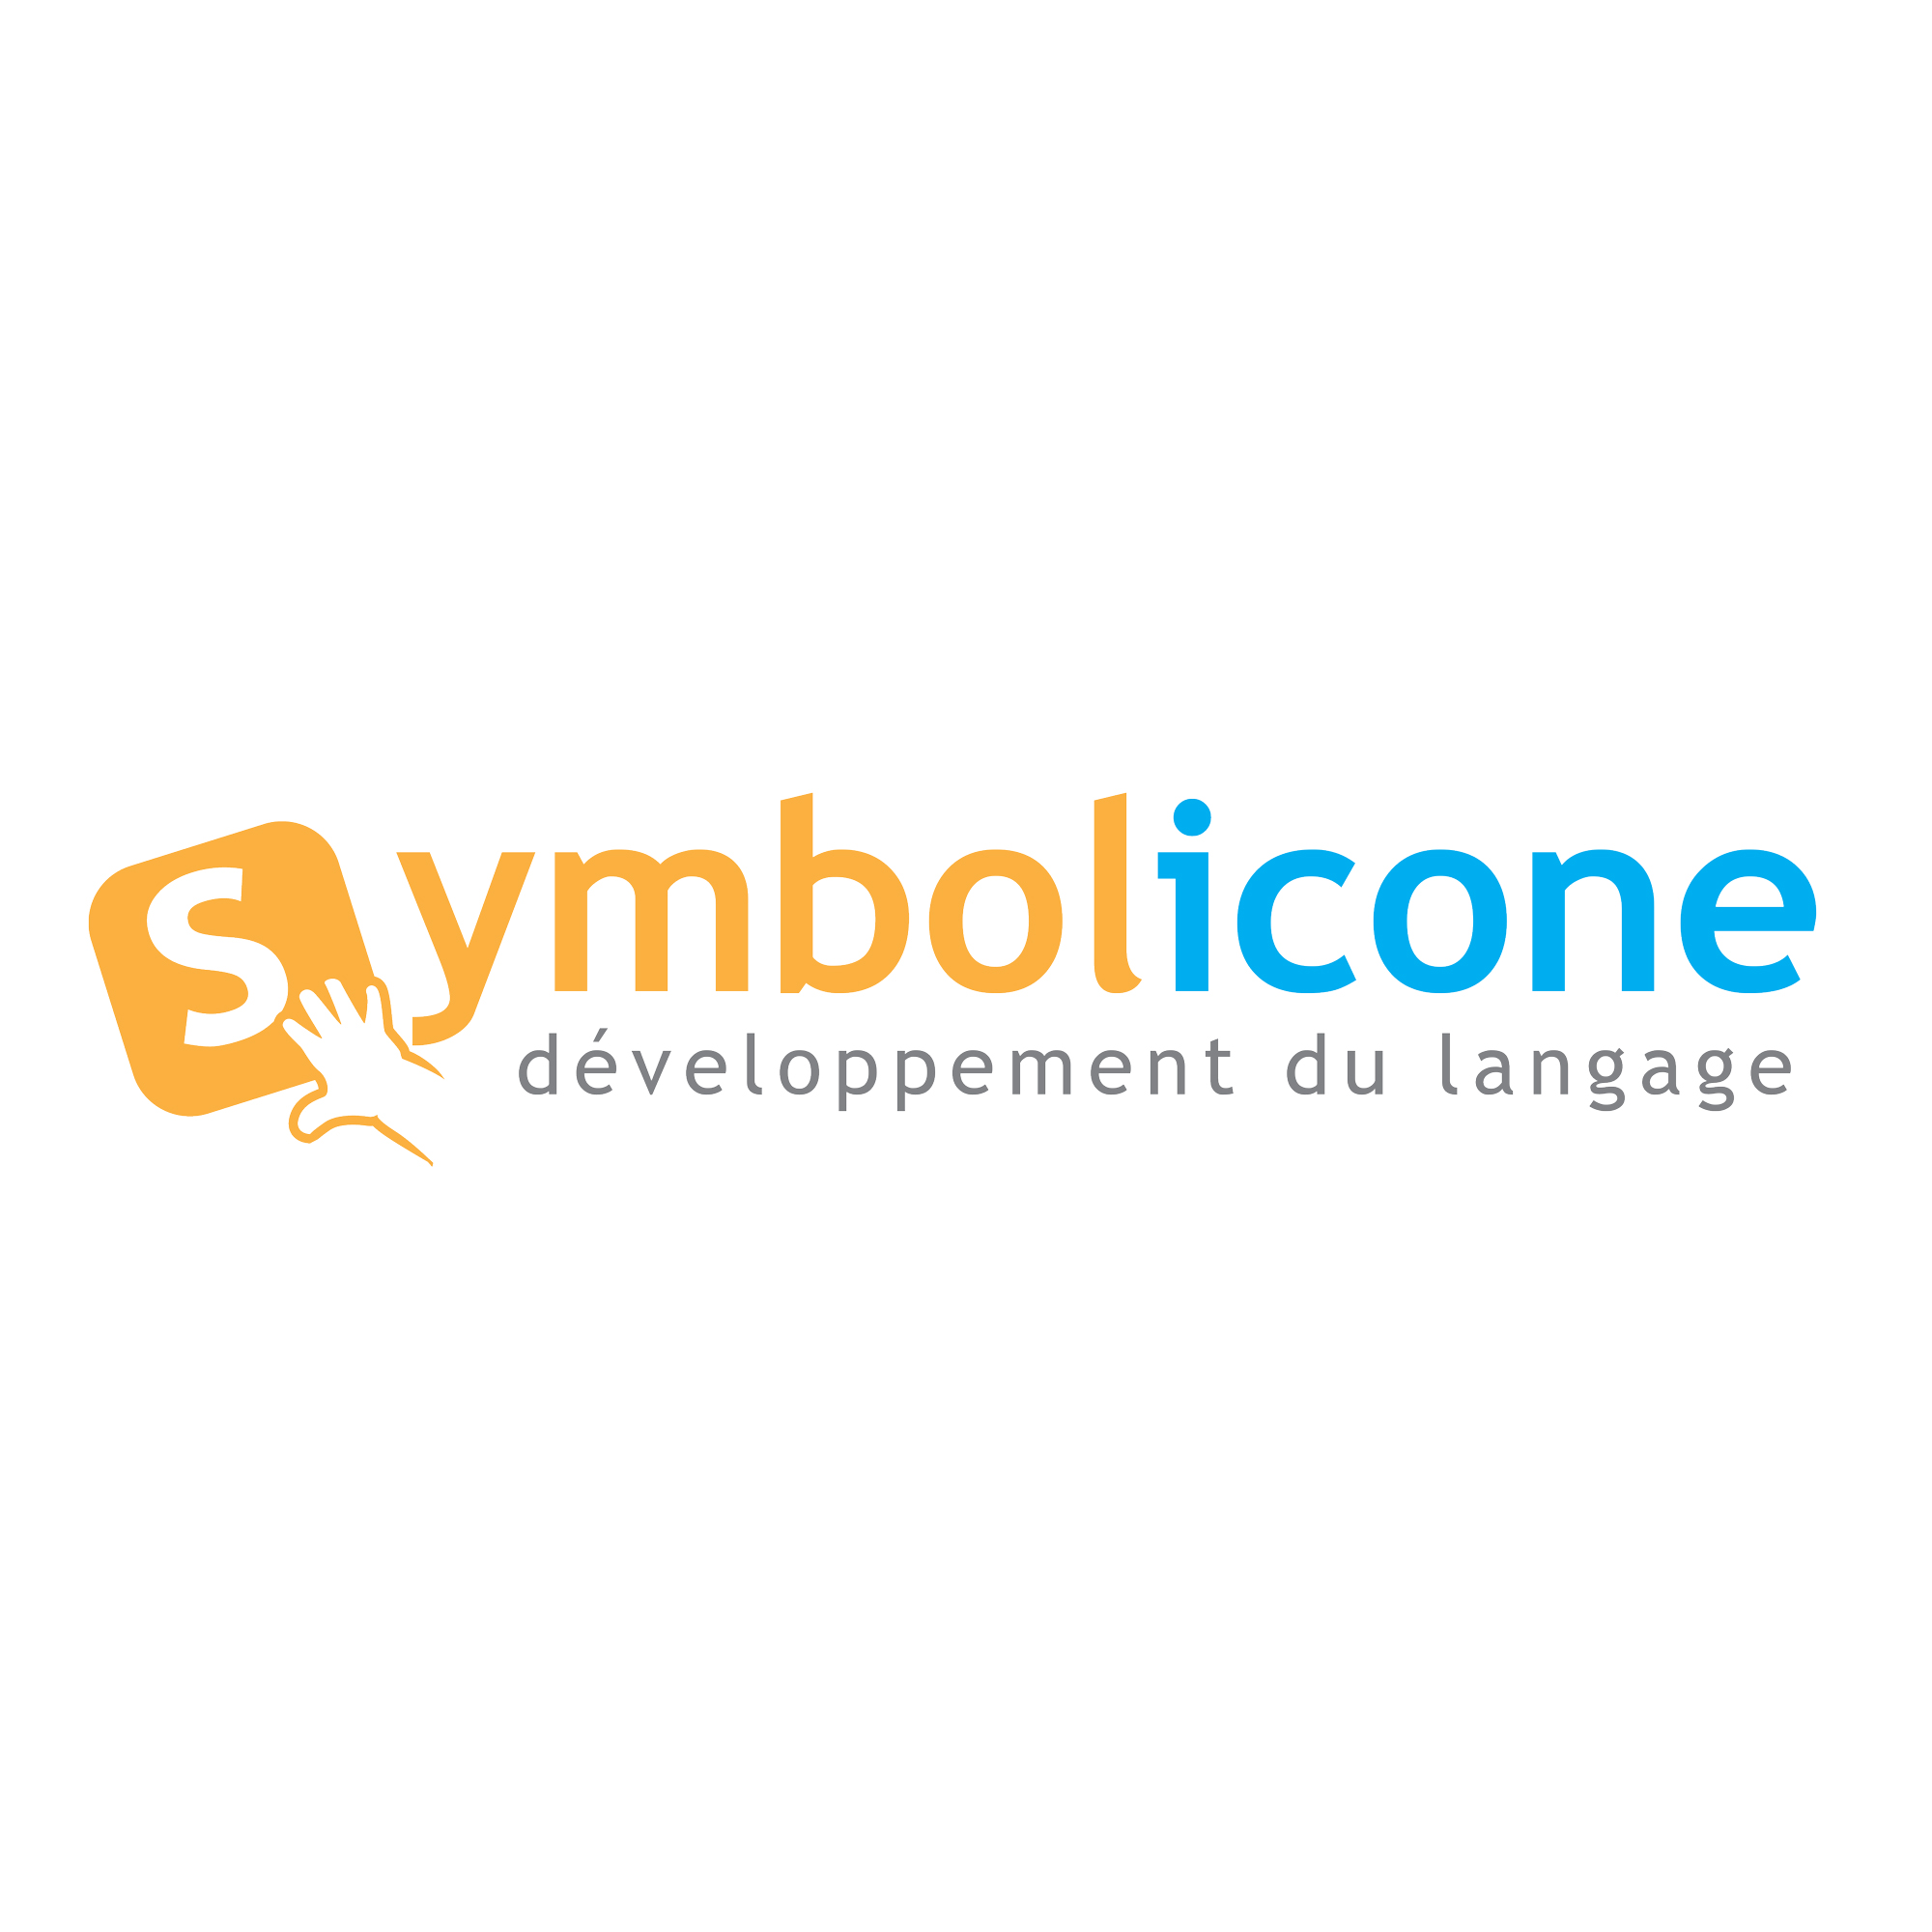 Symbolicone